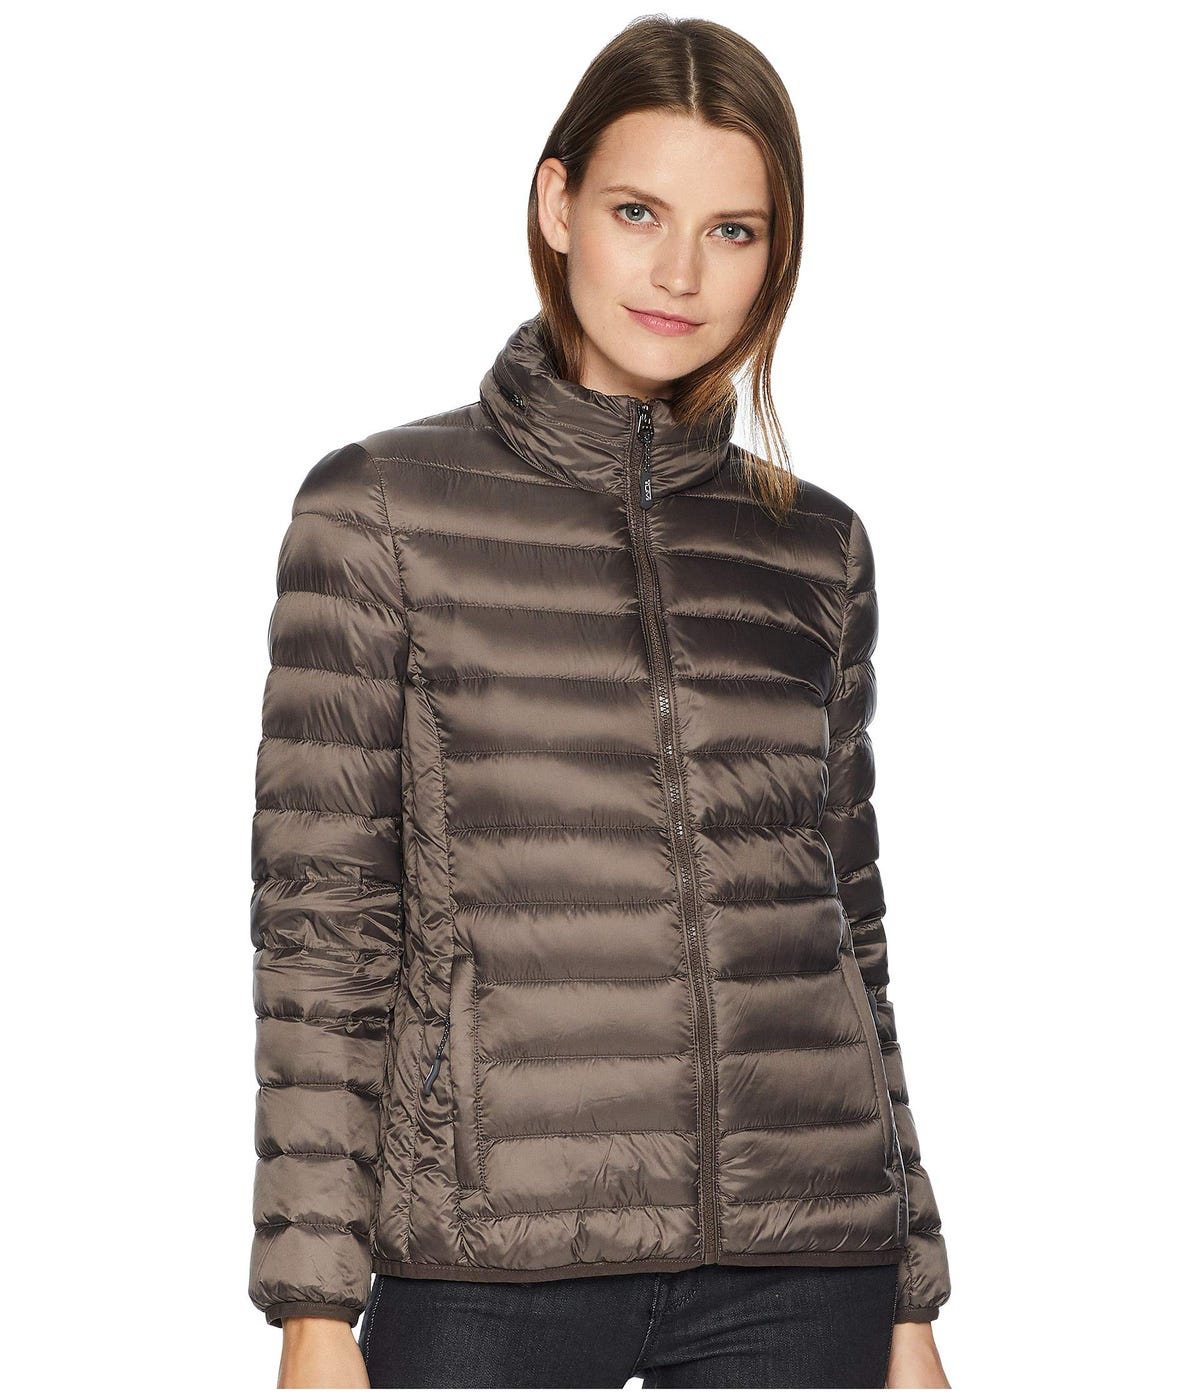 9e0255d3c06 Insulated Down Jackets & Cute Packable Coats For Women